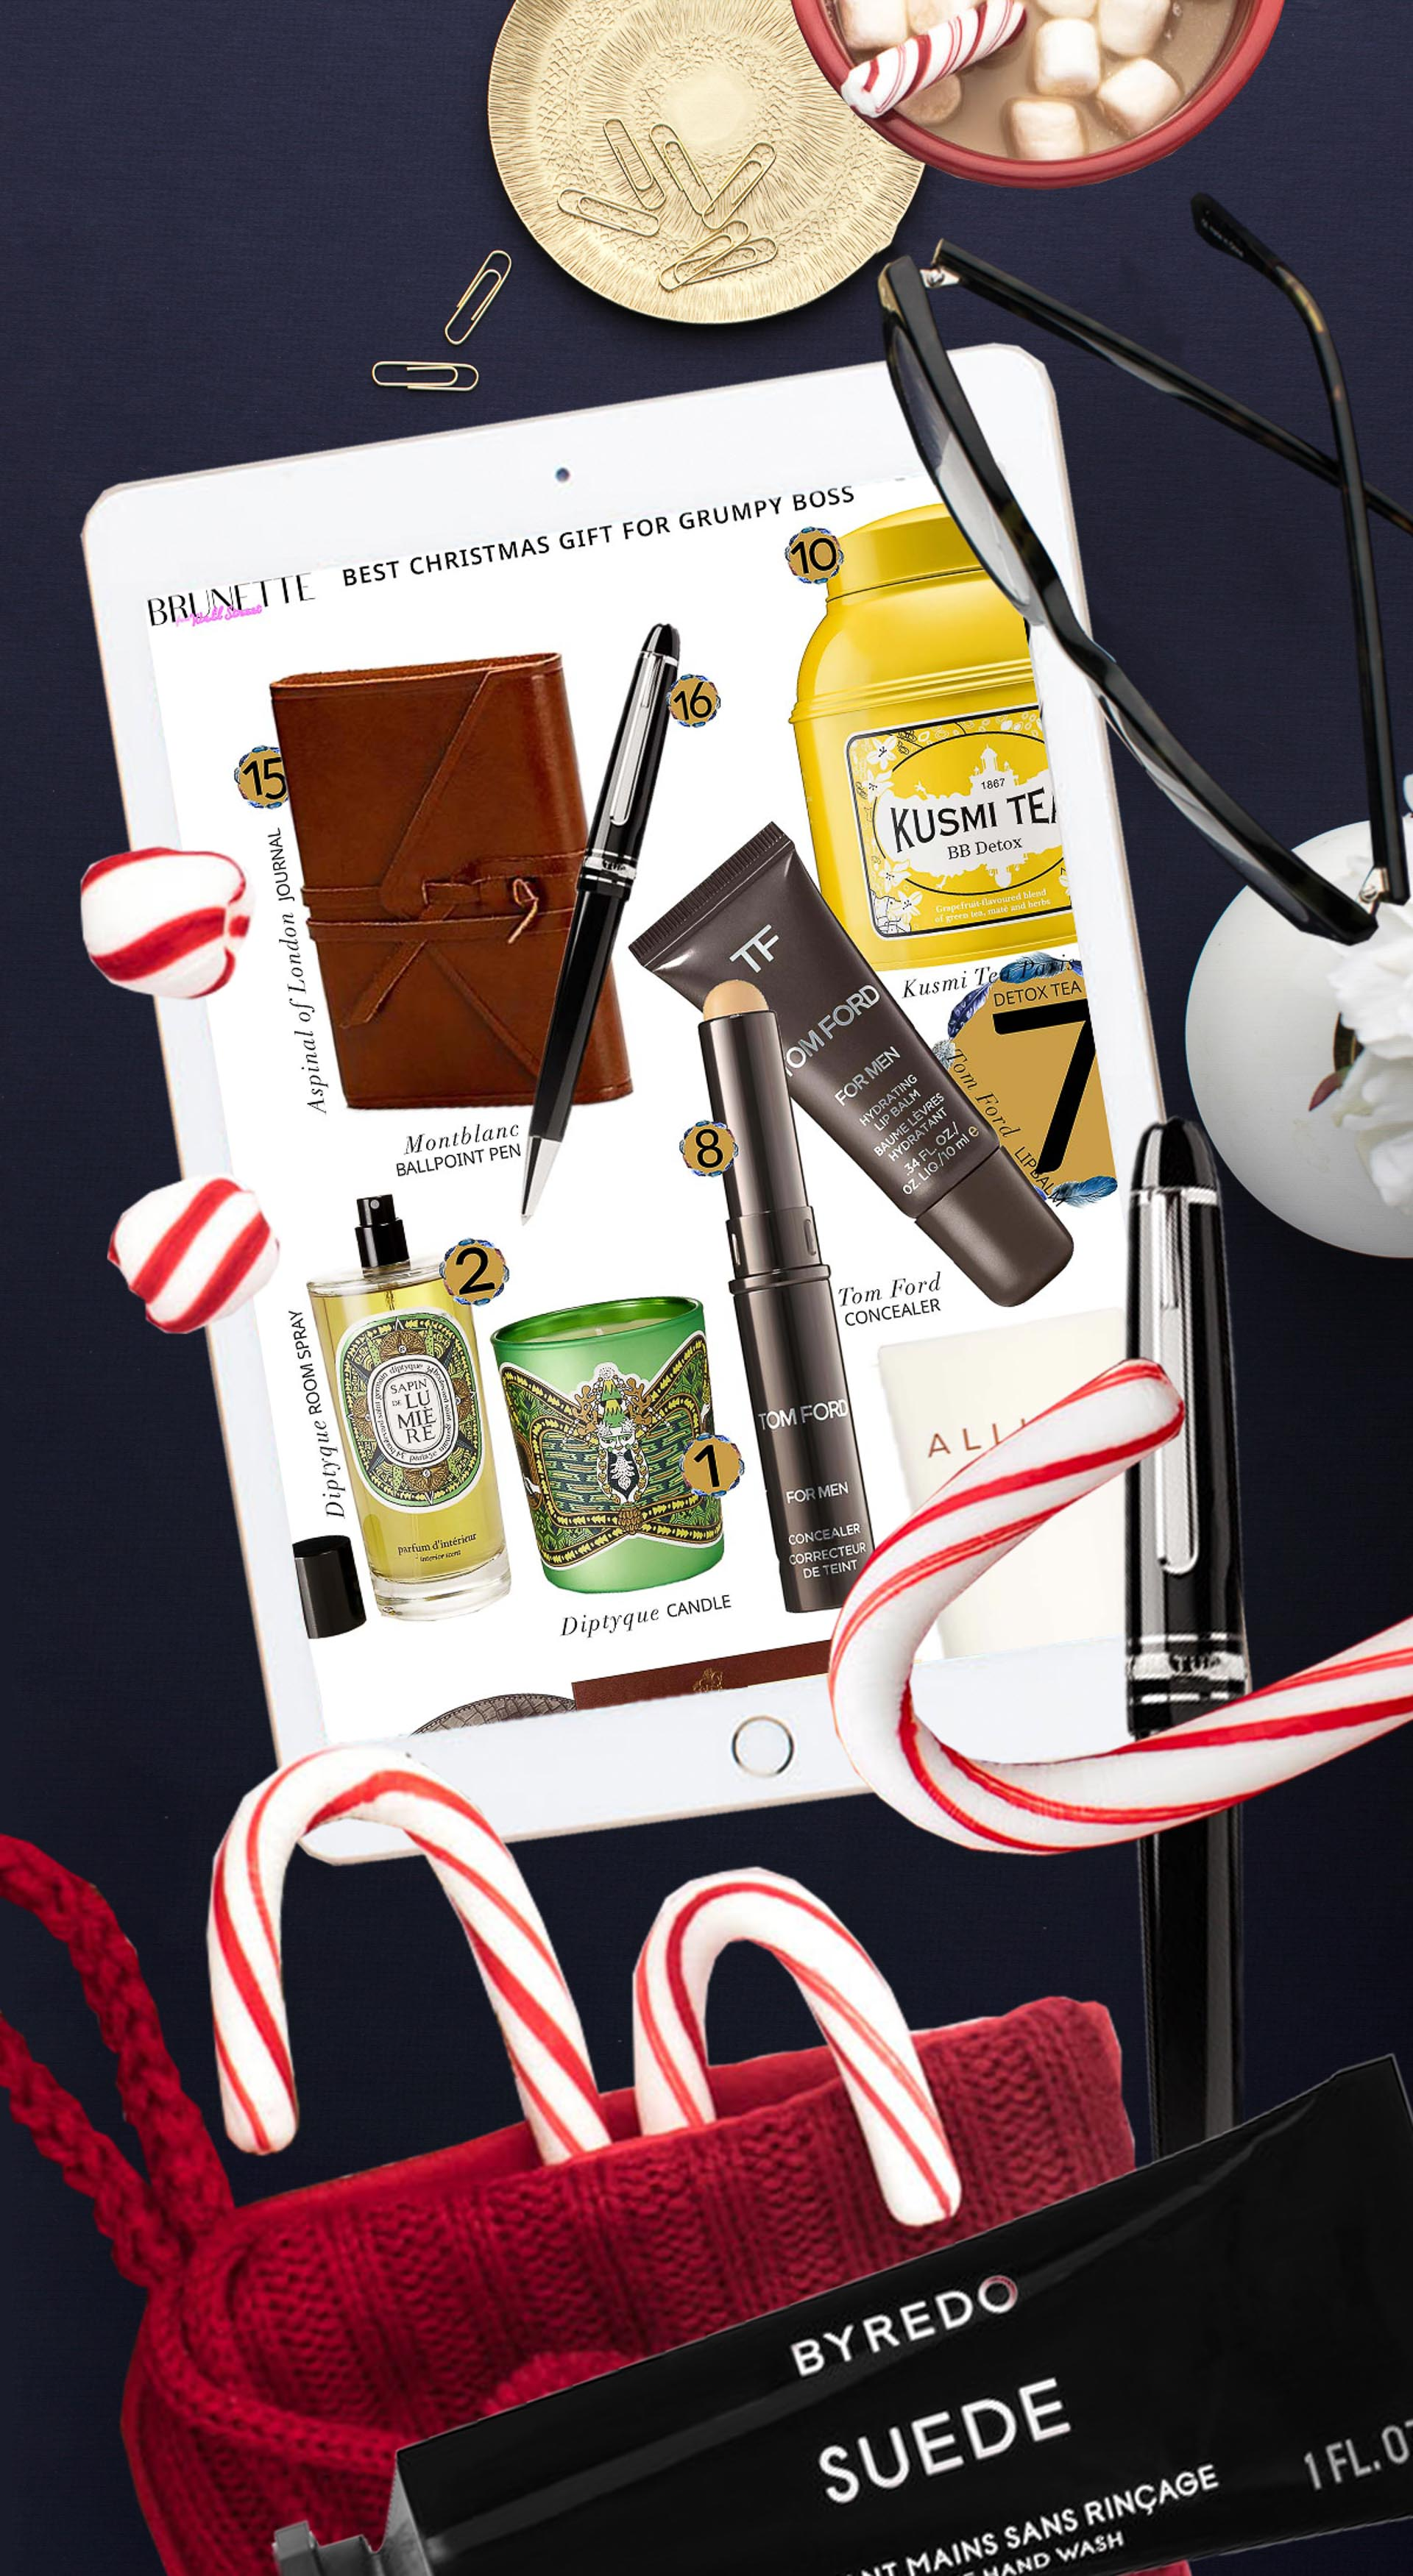 Brunette from Wall Street the best 2019 Christmas gifts for boss